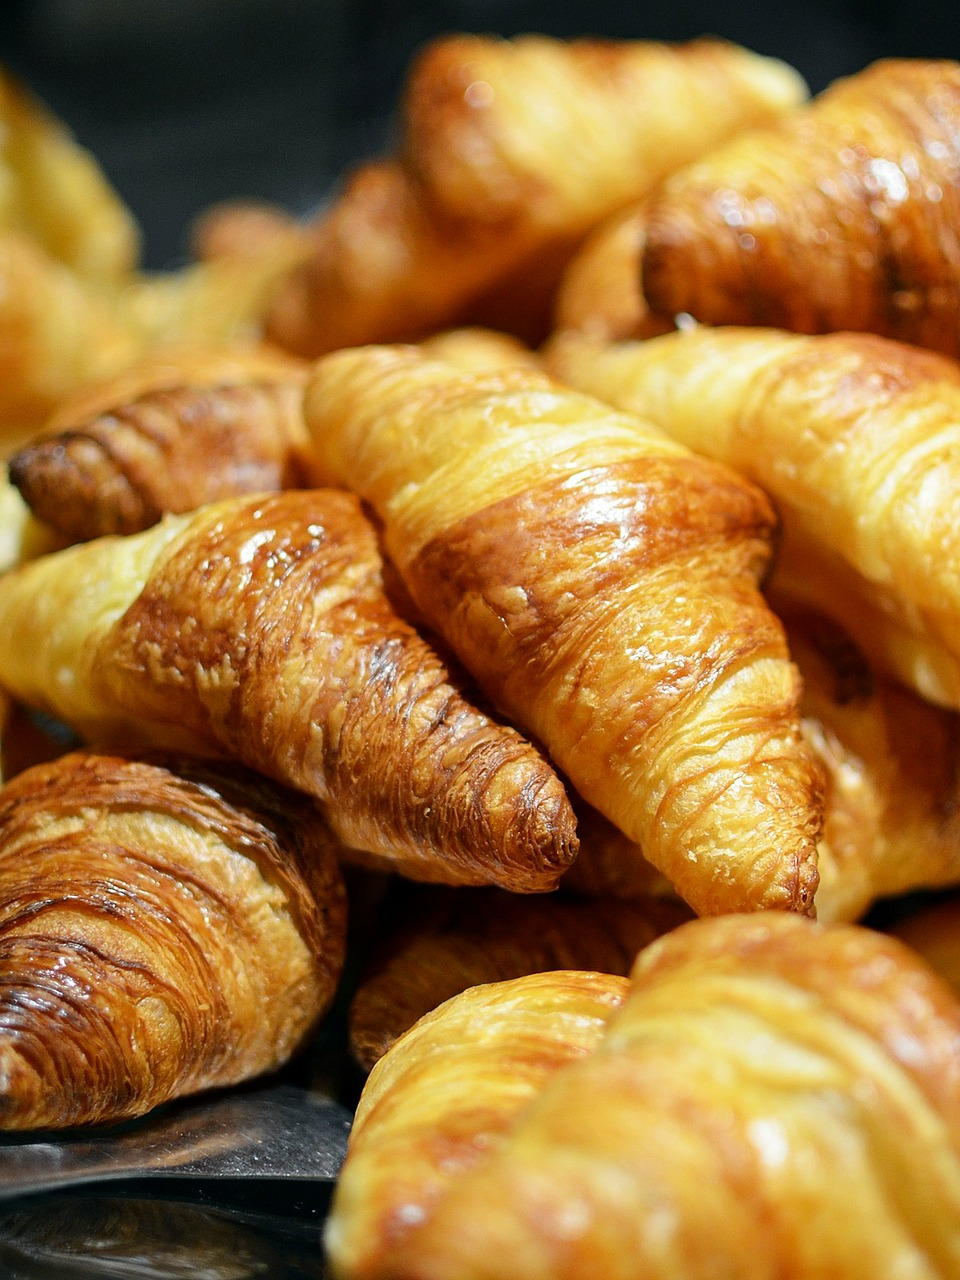 assortment of croissants